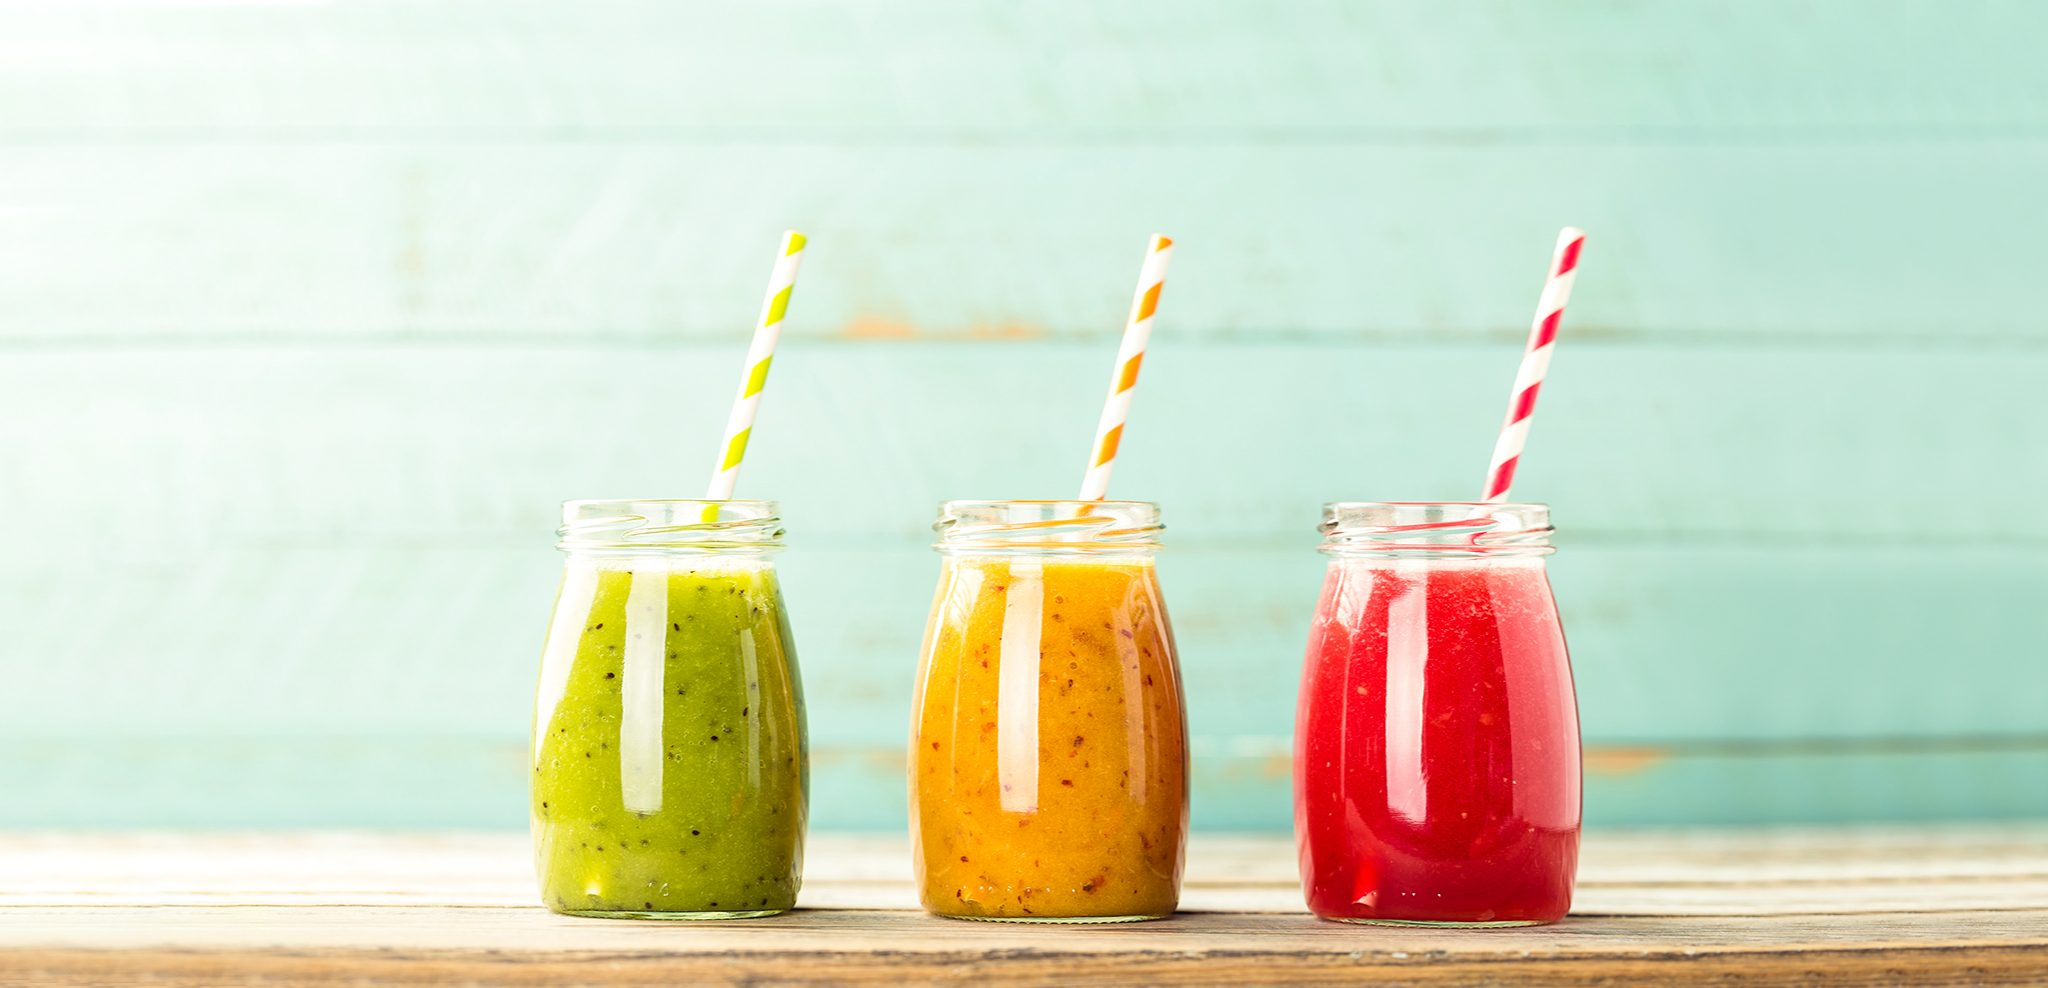 7 Delicious and Healthy Watermelon and Banana Smoothies